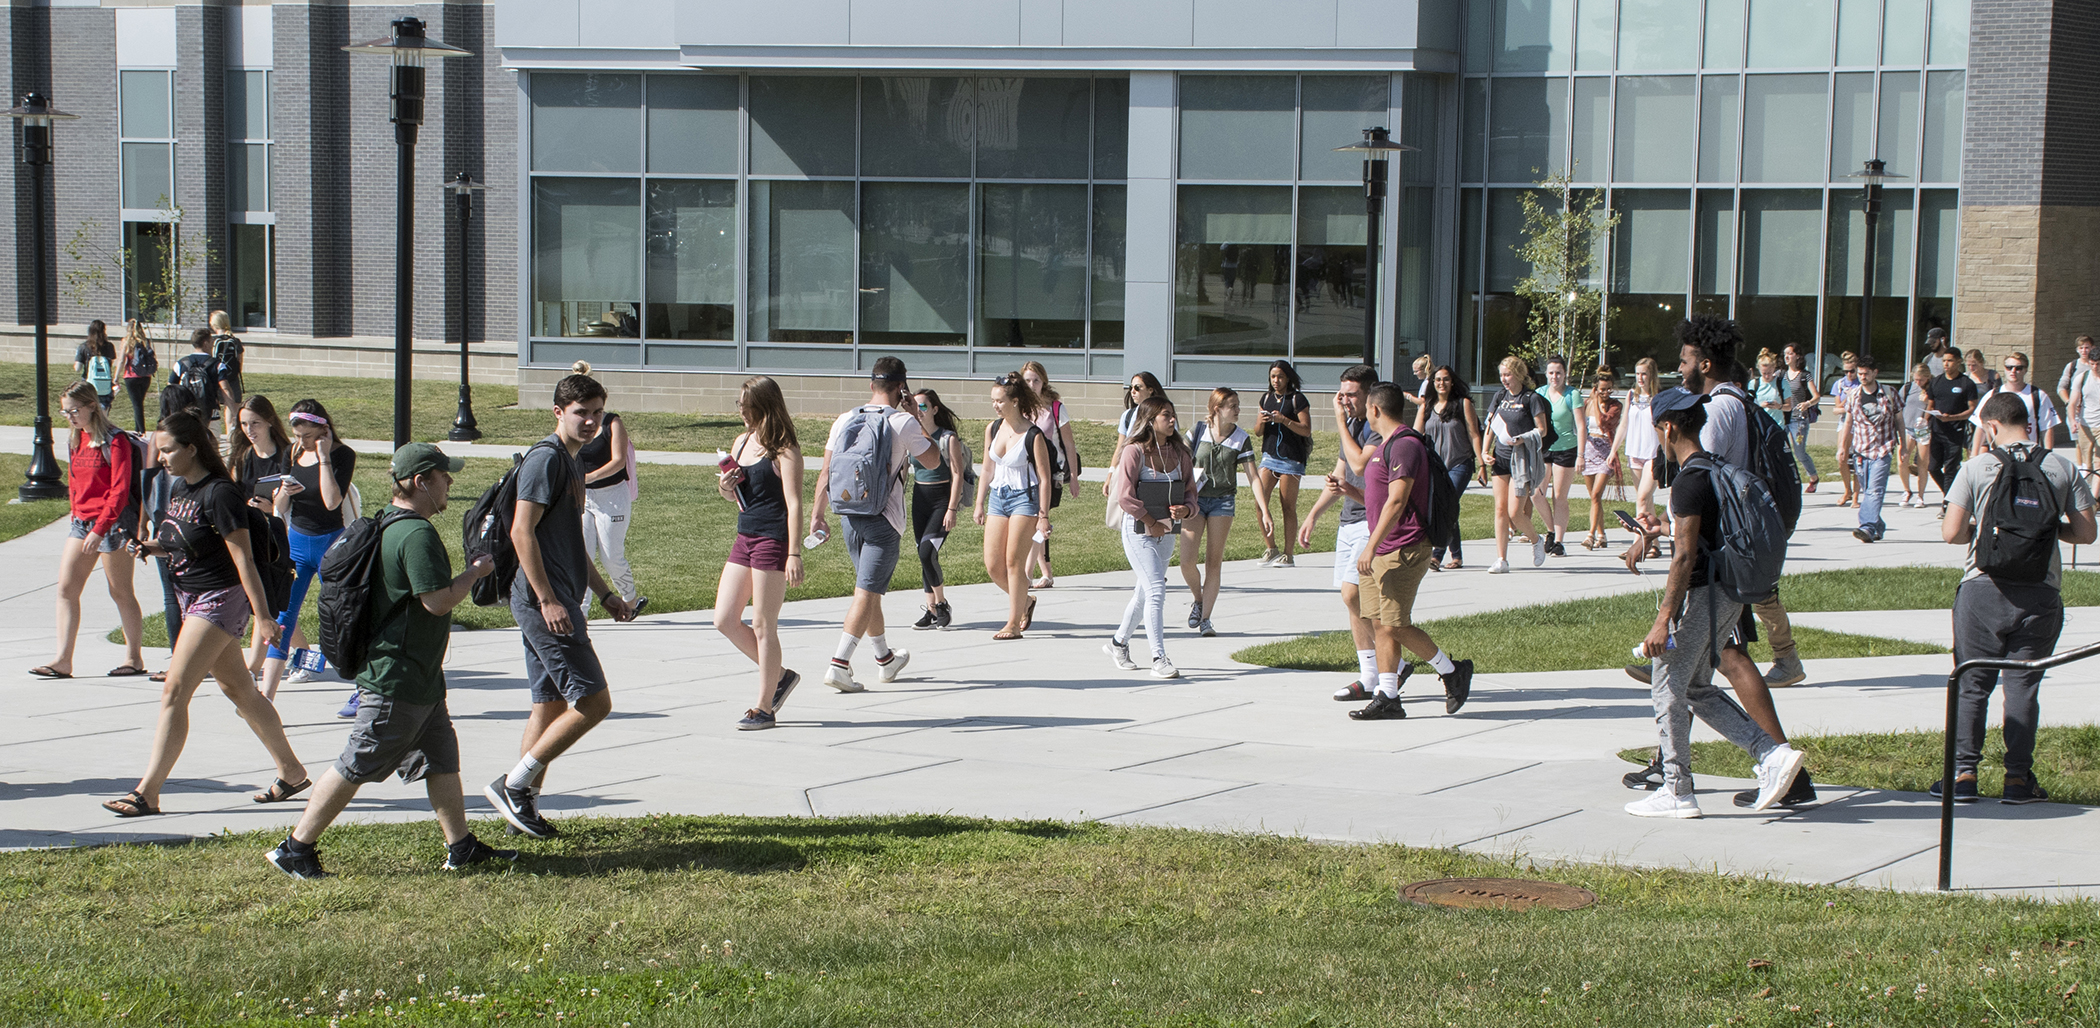 Students fill the walkways